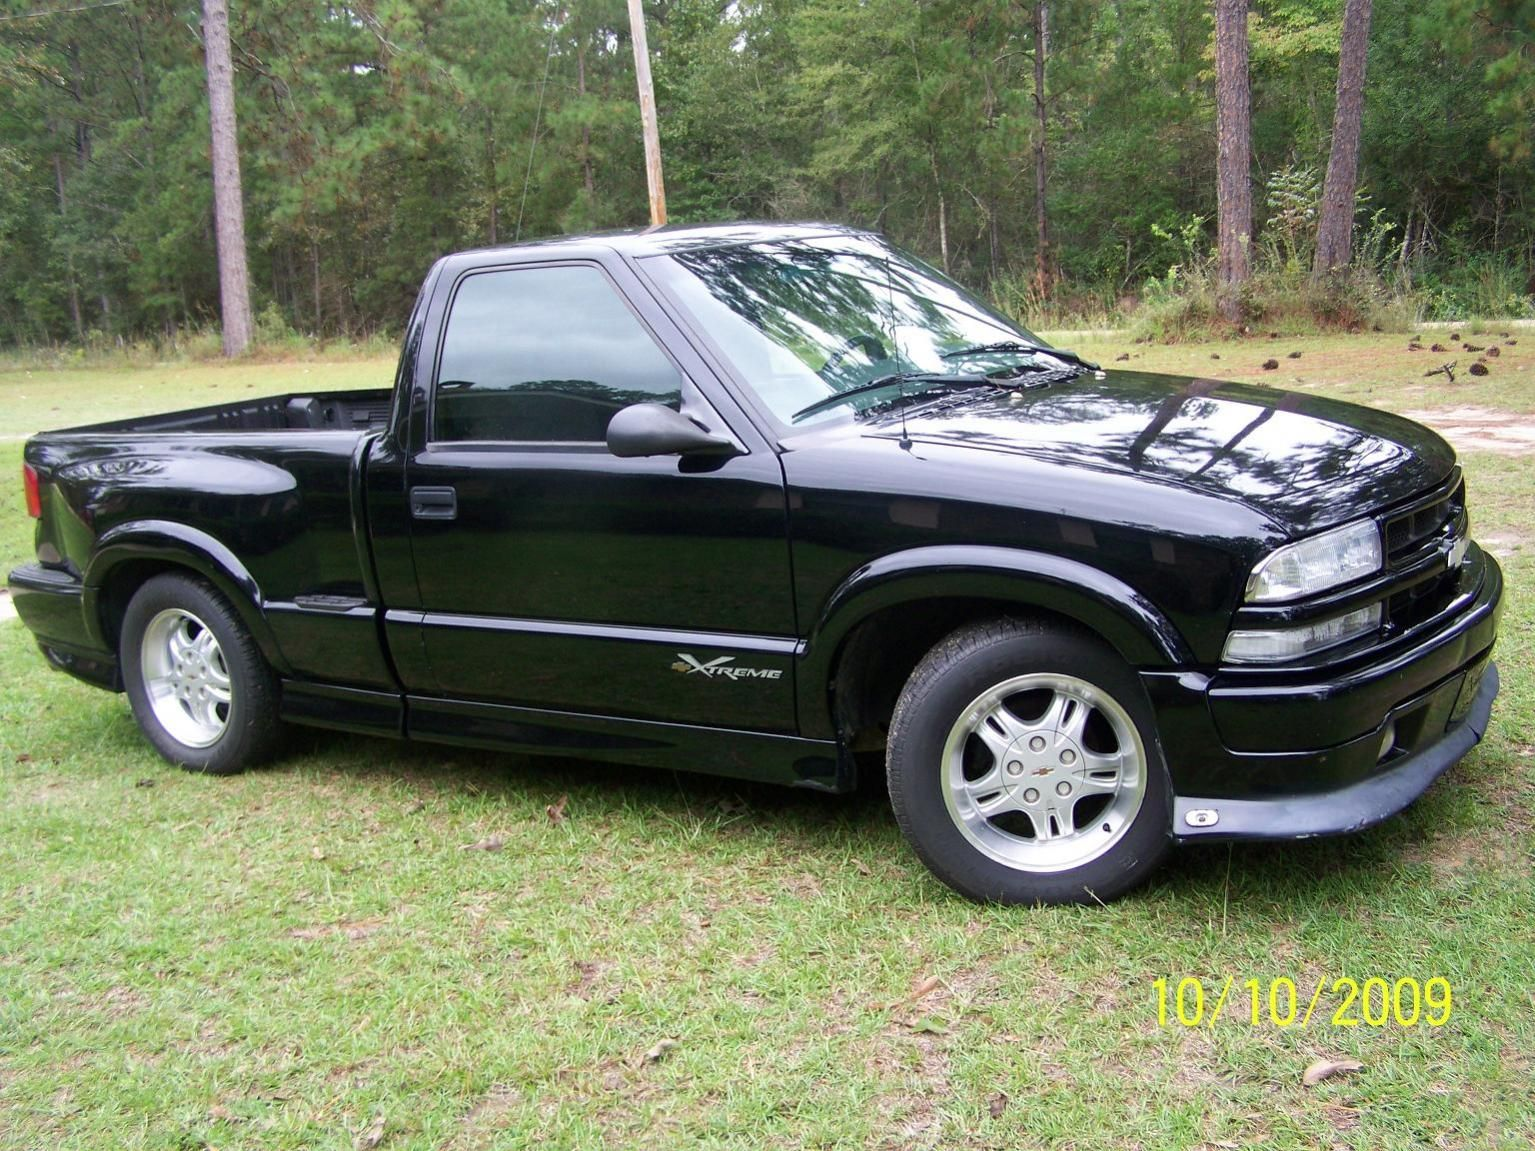 Chevrolet S10 Xtreme Chevy S10 Chevy Small Trucks